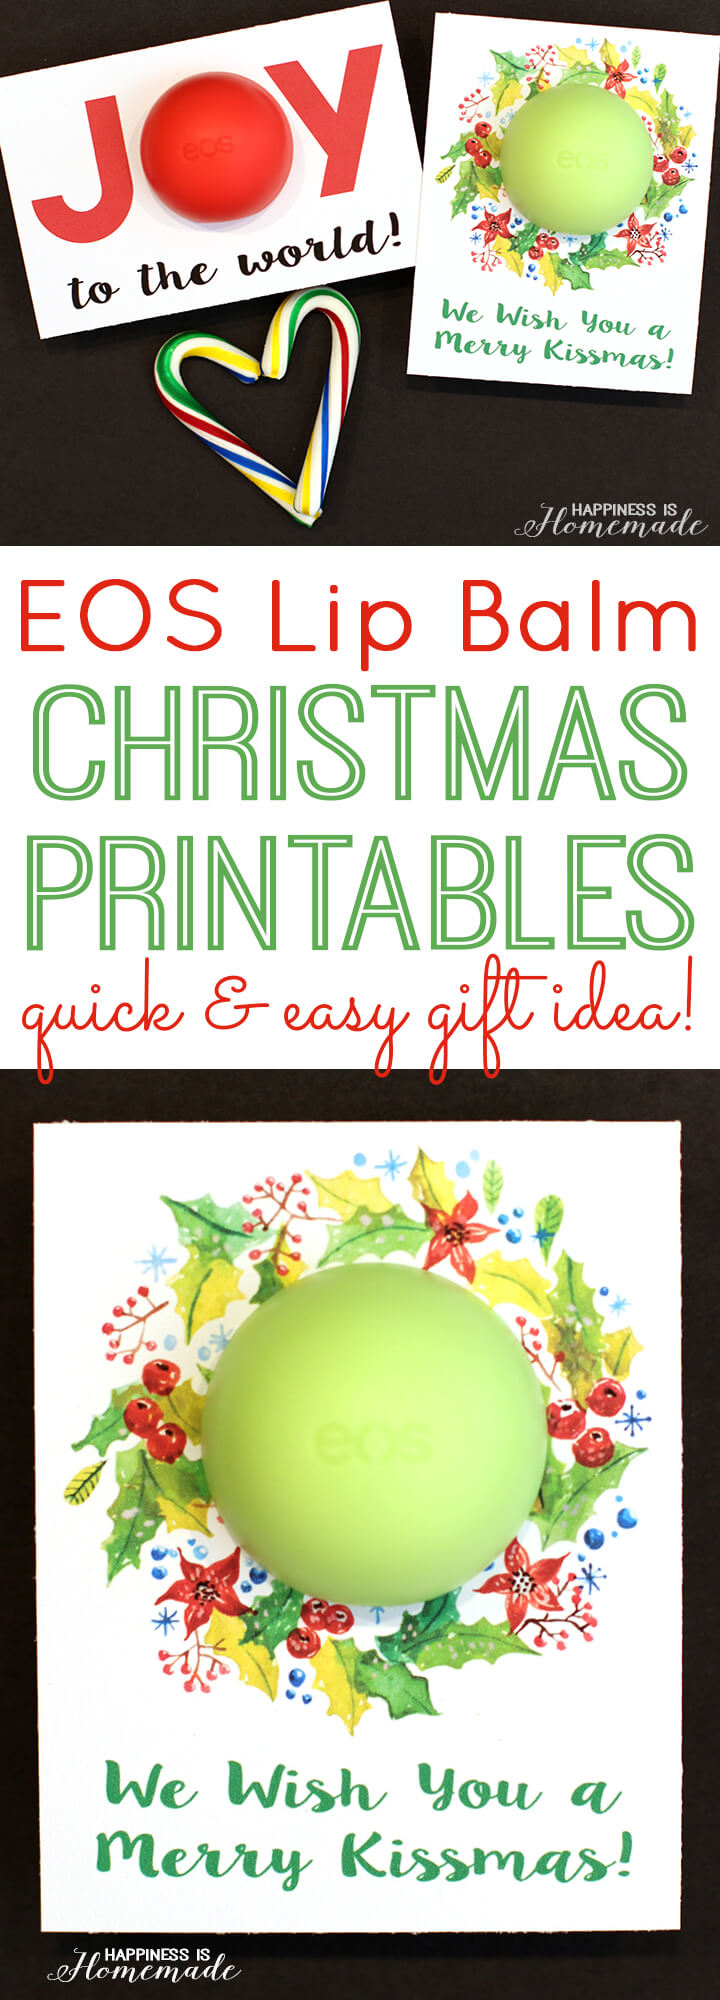 EOS Lip Balm Christmas Printables Gift Idea